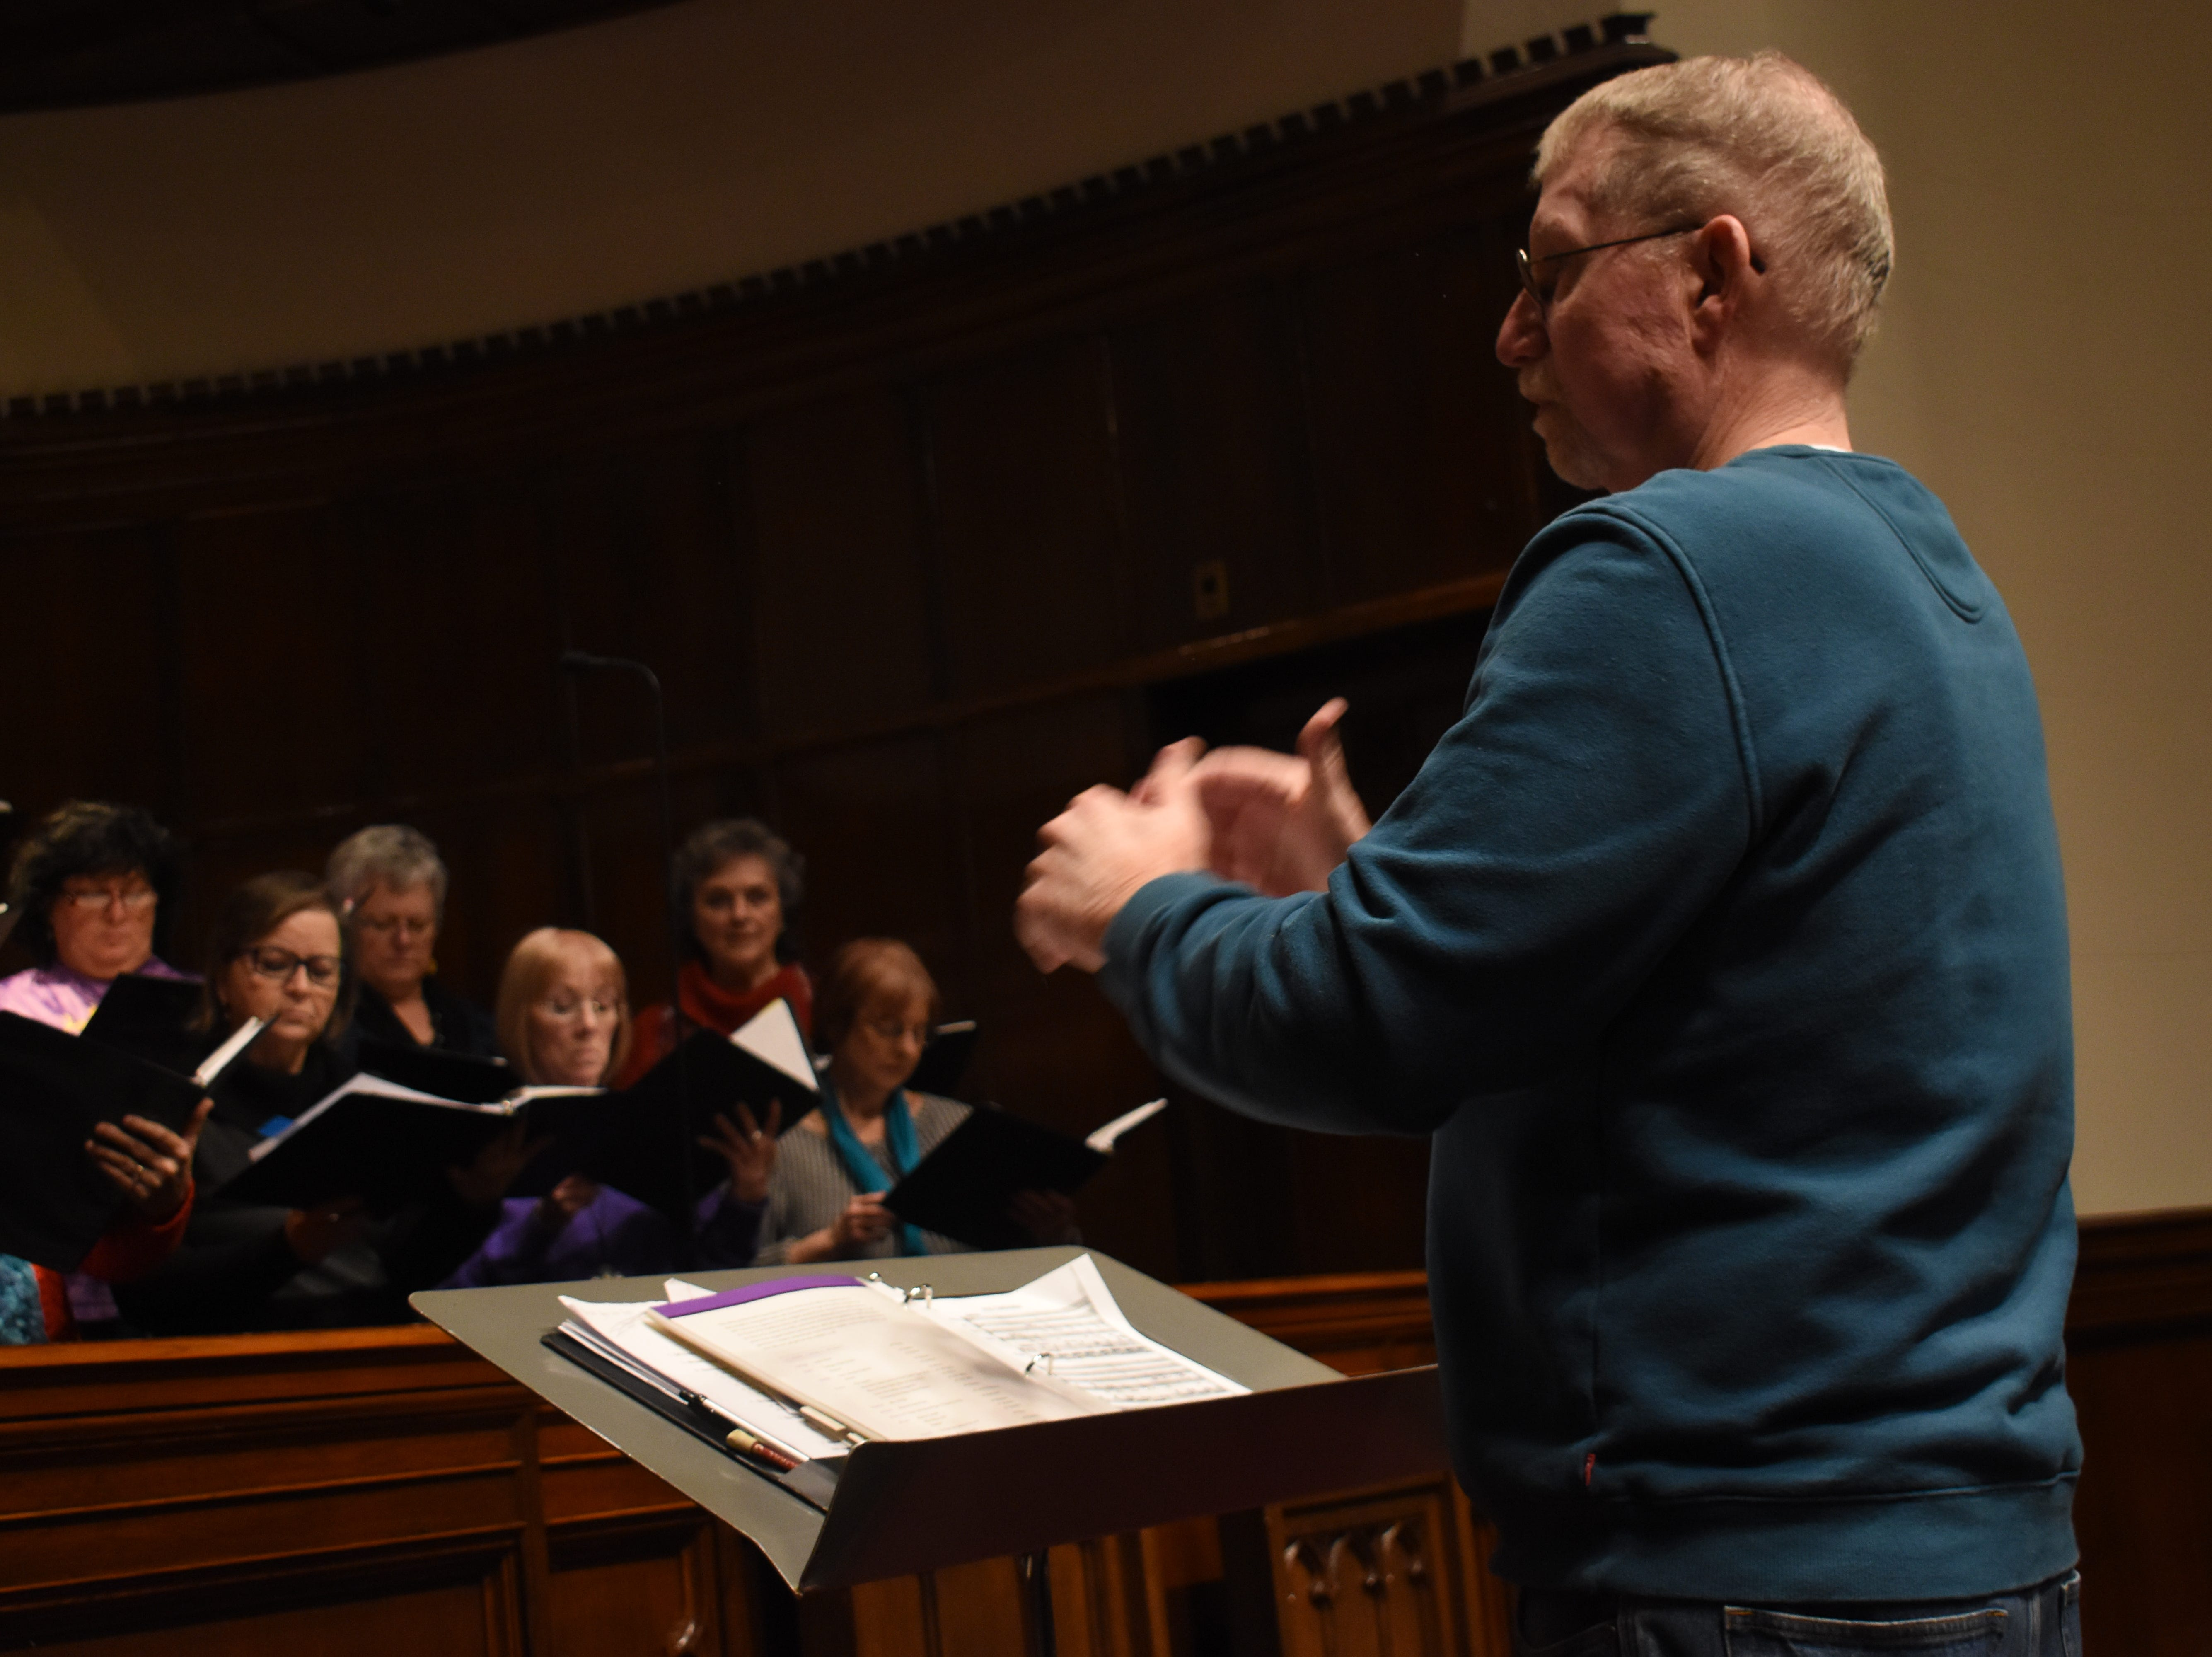 """The Red River Chorale, under the direction of Dr. Burt Allen, will present a concert, """"Inspired by Liturgy,"""" at 7:30 Tuesday, March 12, 2019 at Emmanuel Baptist Church. The concert is based on the Liturgical works of composers like Mozart, Shubert and Vivaldi. Tickets are $15 for adults and $5 for students and can be purchased from a chorale member, Red River Music store or online at Red River ChoraleÊor TicketCentral."""